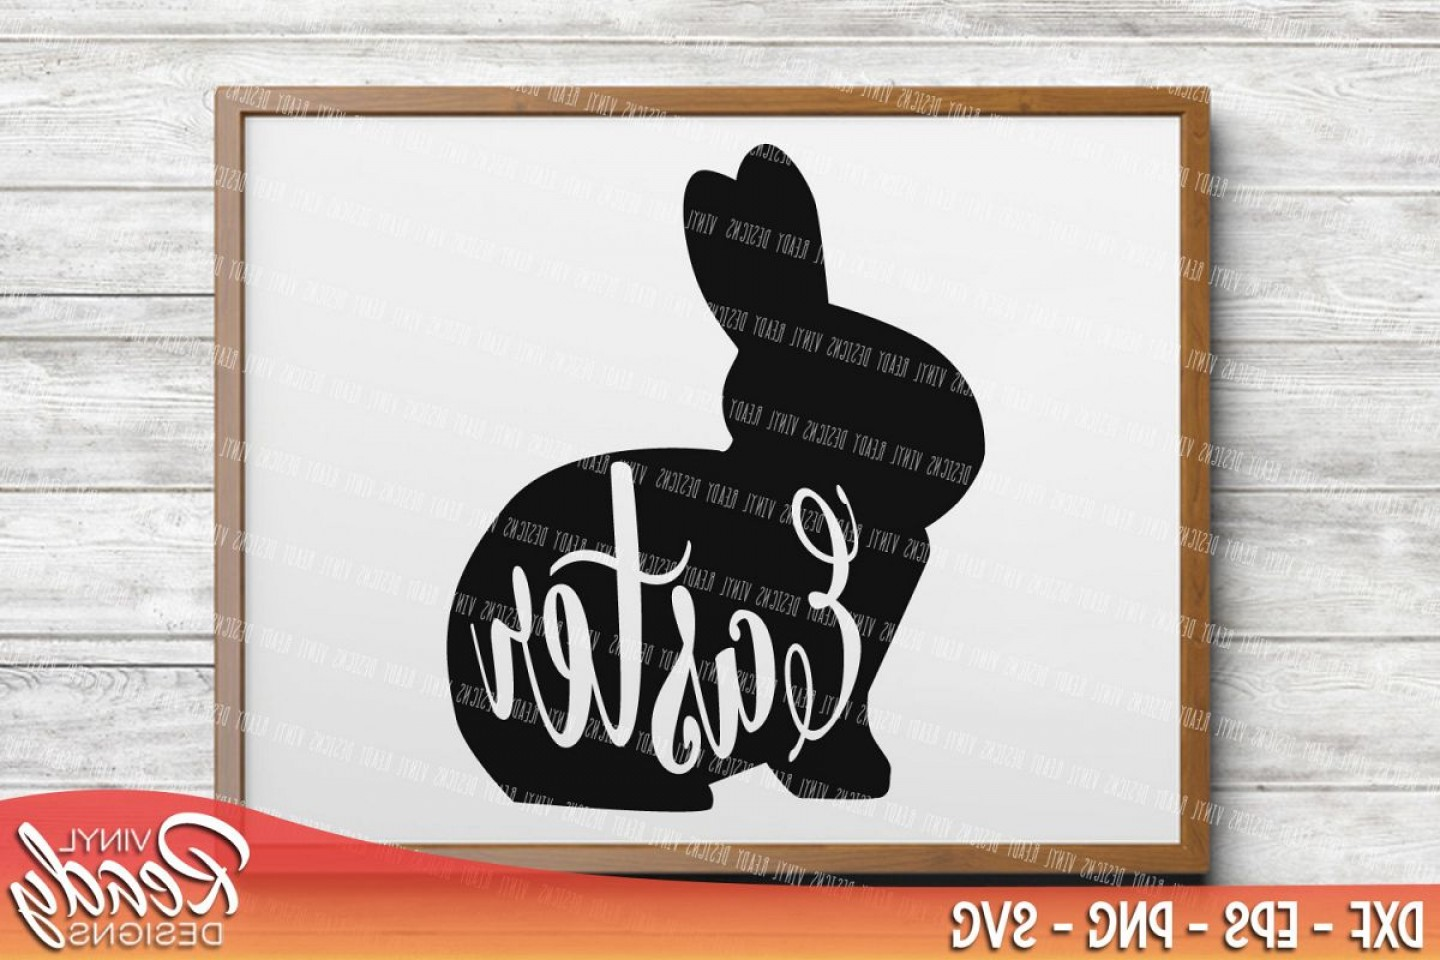 Image Vector Clip Art Bunny Bunny: Easter Bunny Rabbit Vector Clip Art Cutting Files Dxf Eps Png Svg